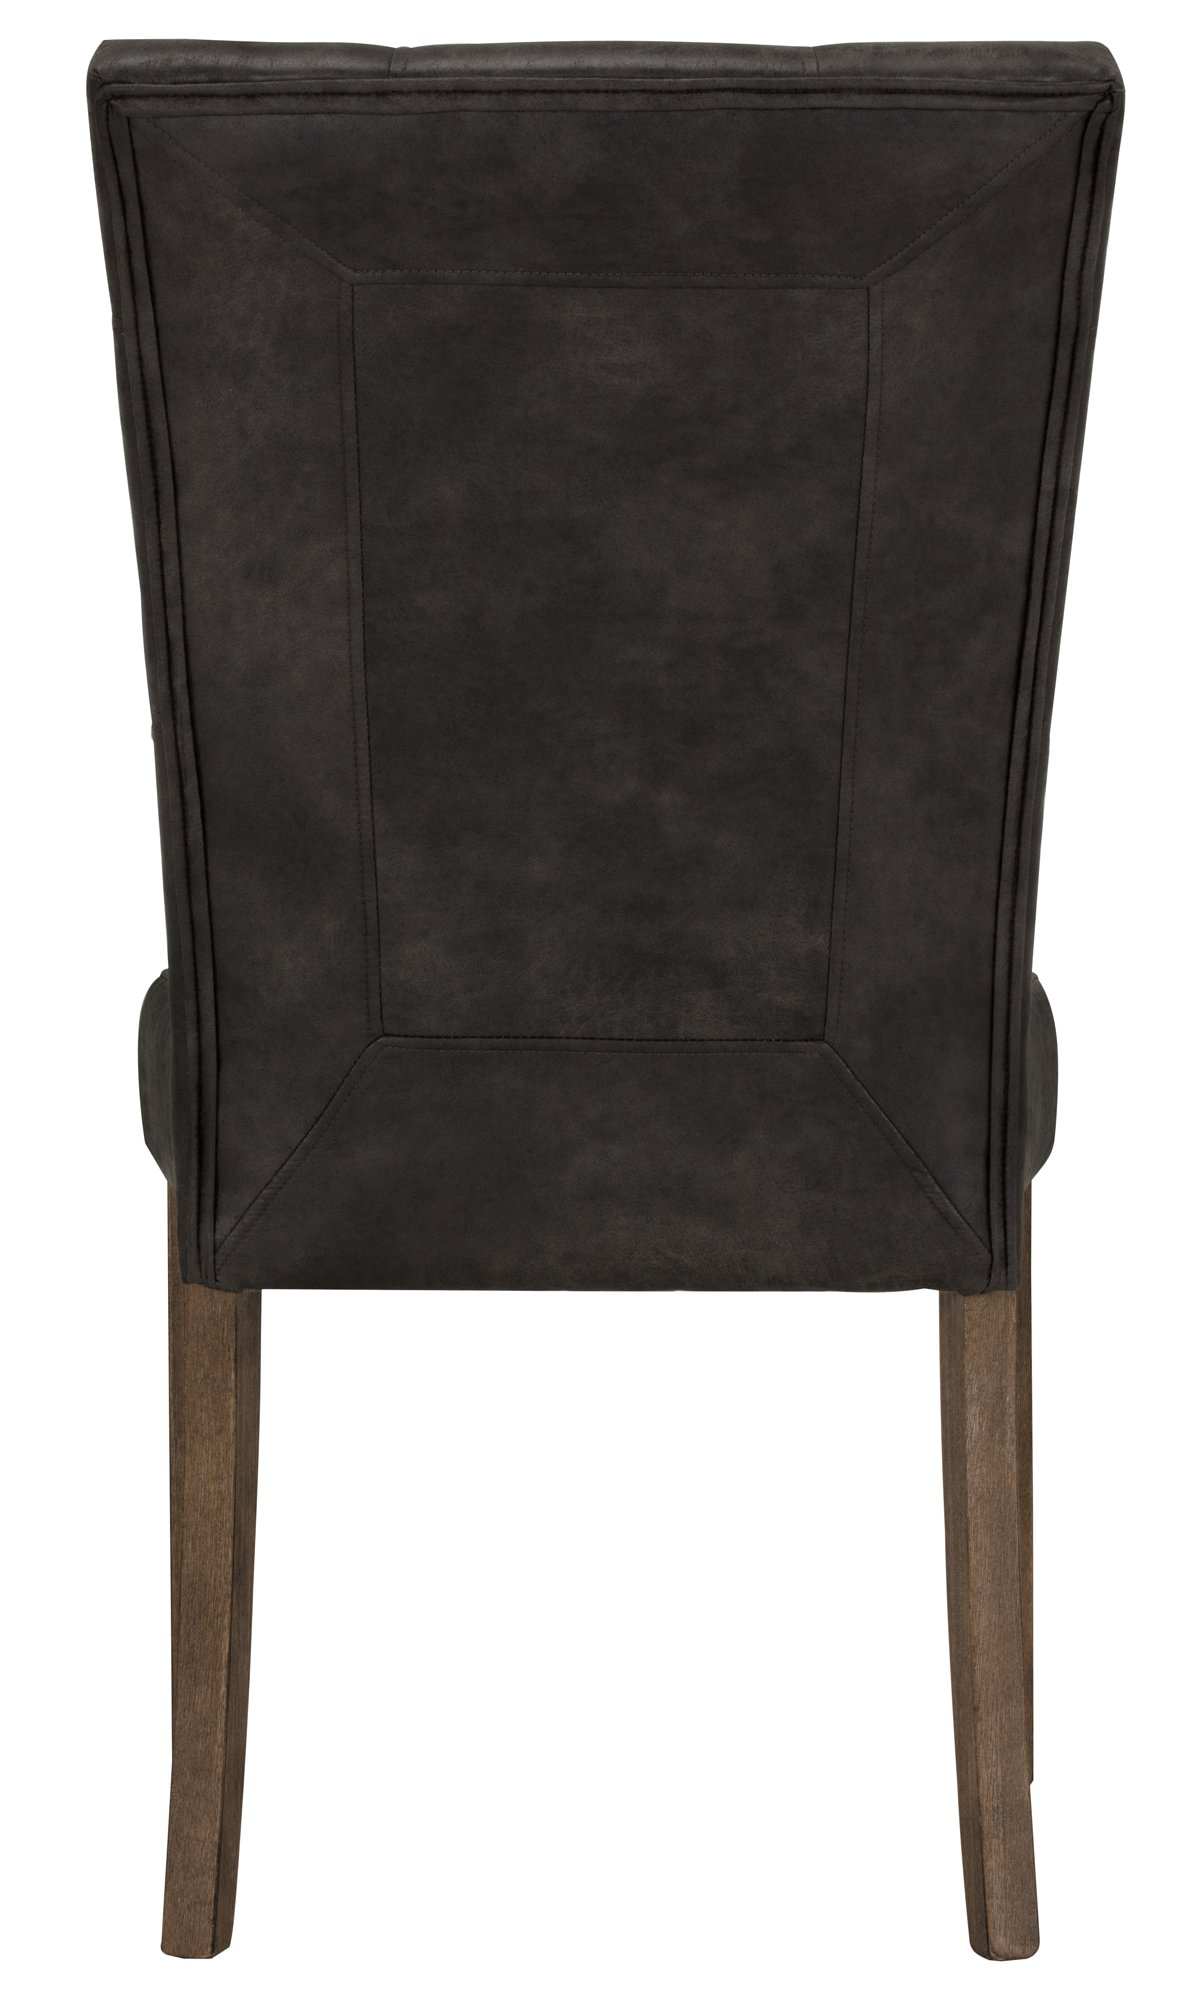 City Furniture Emmett Gray Bonded Leather Side Chair